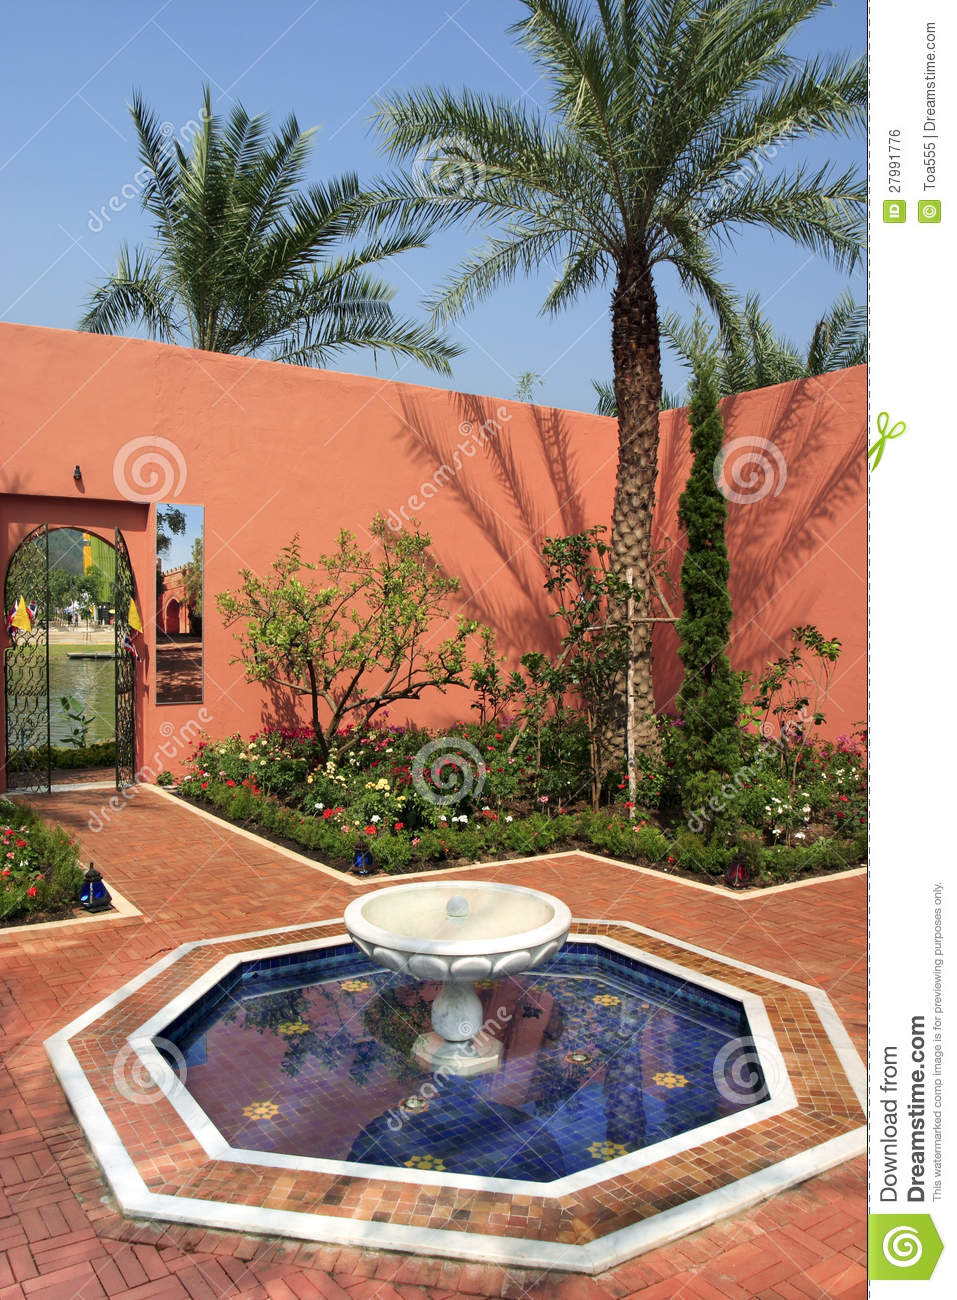 Moroccan Garden Style Stock Photo Image Of Building 27991776